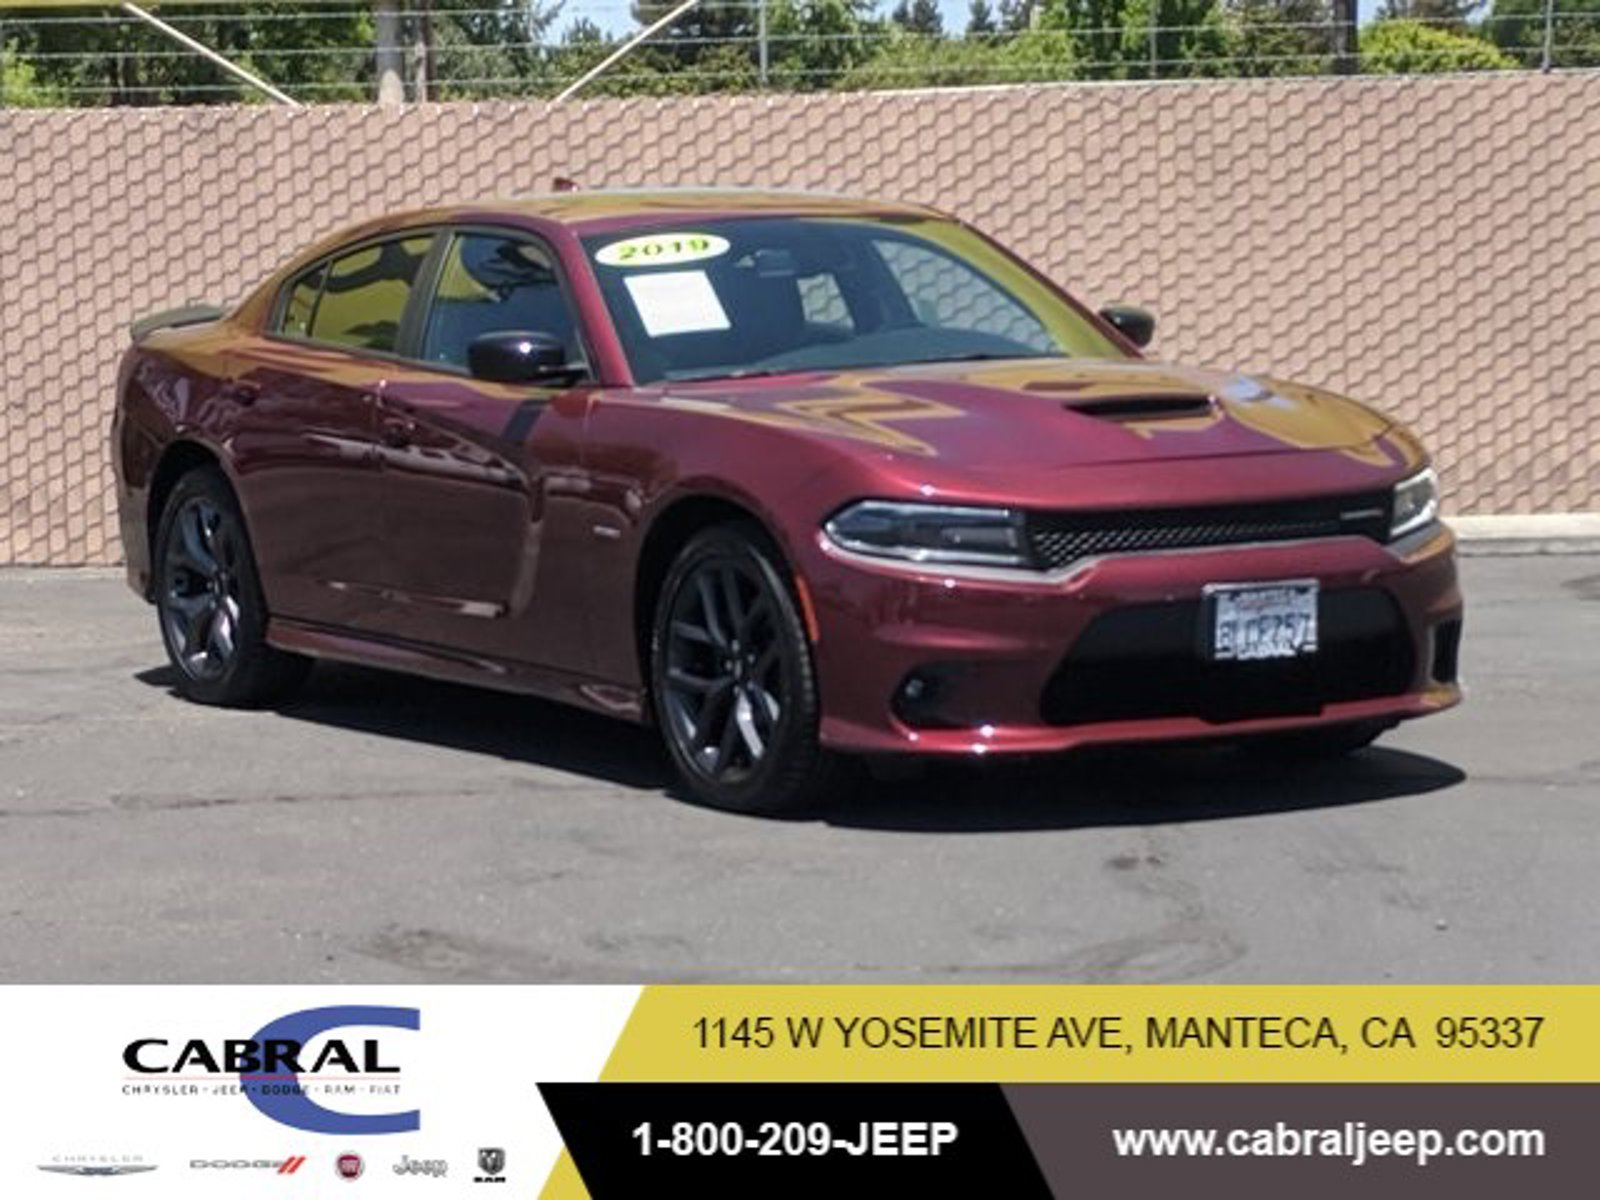 2019 Dodge Charger R/T R/T RWD Regular Unleaded V-8 5.7 L/345 [9]